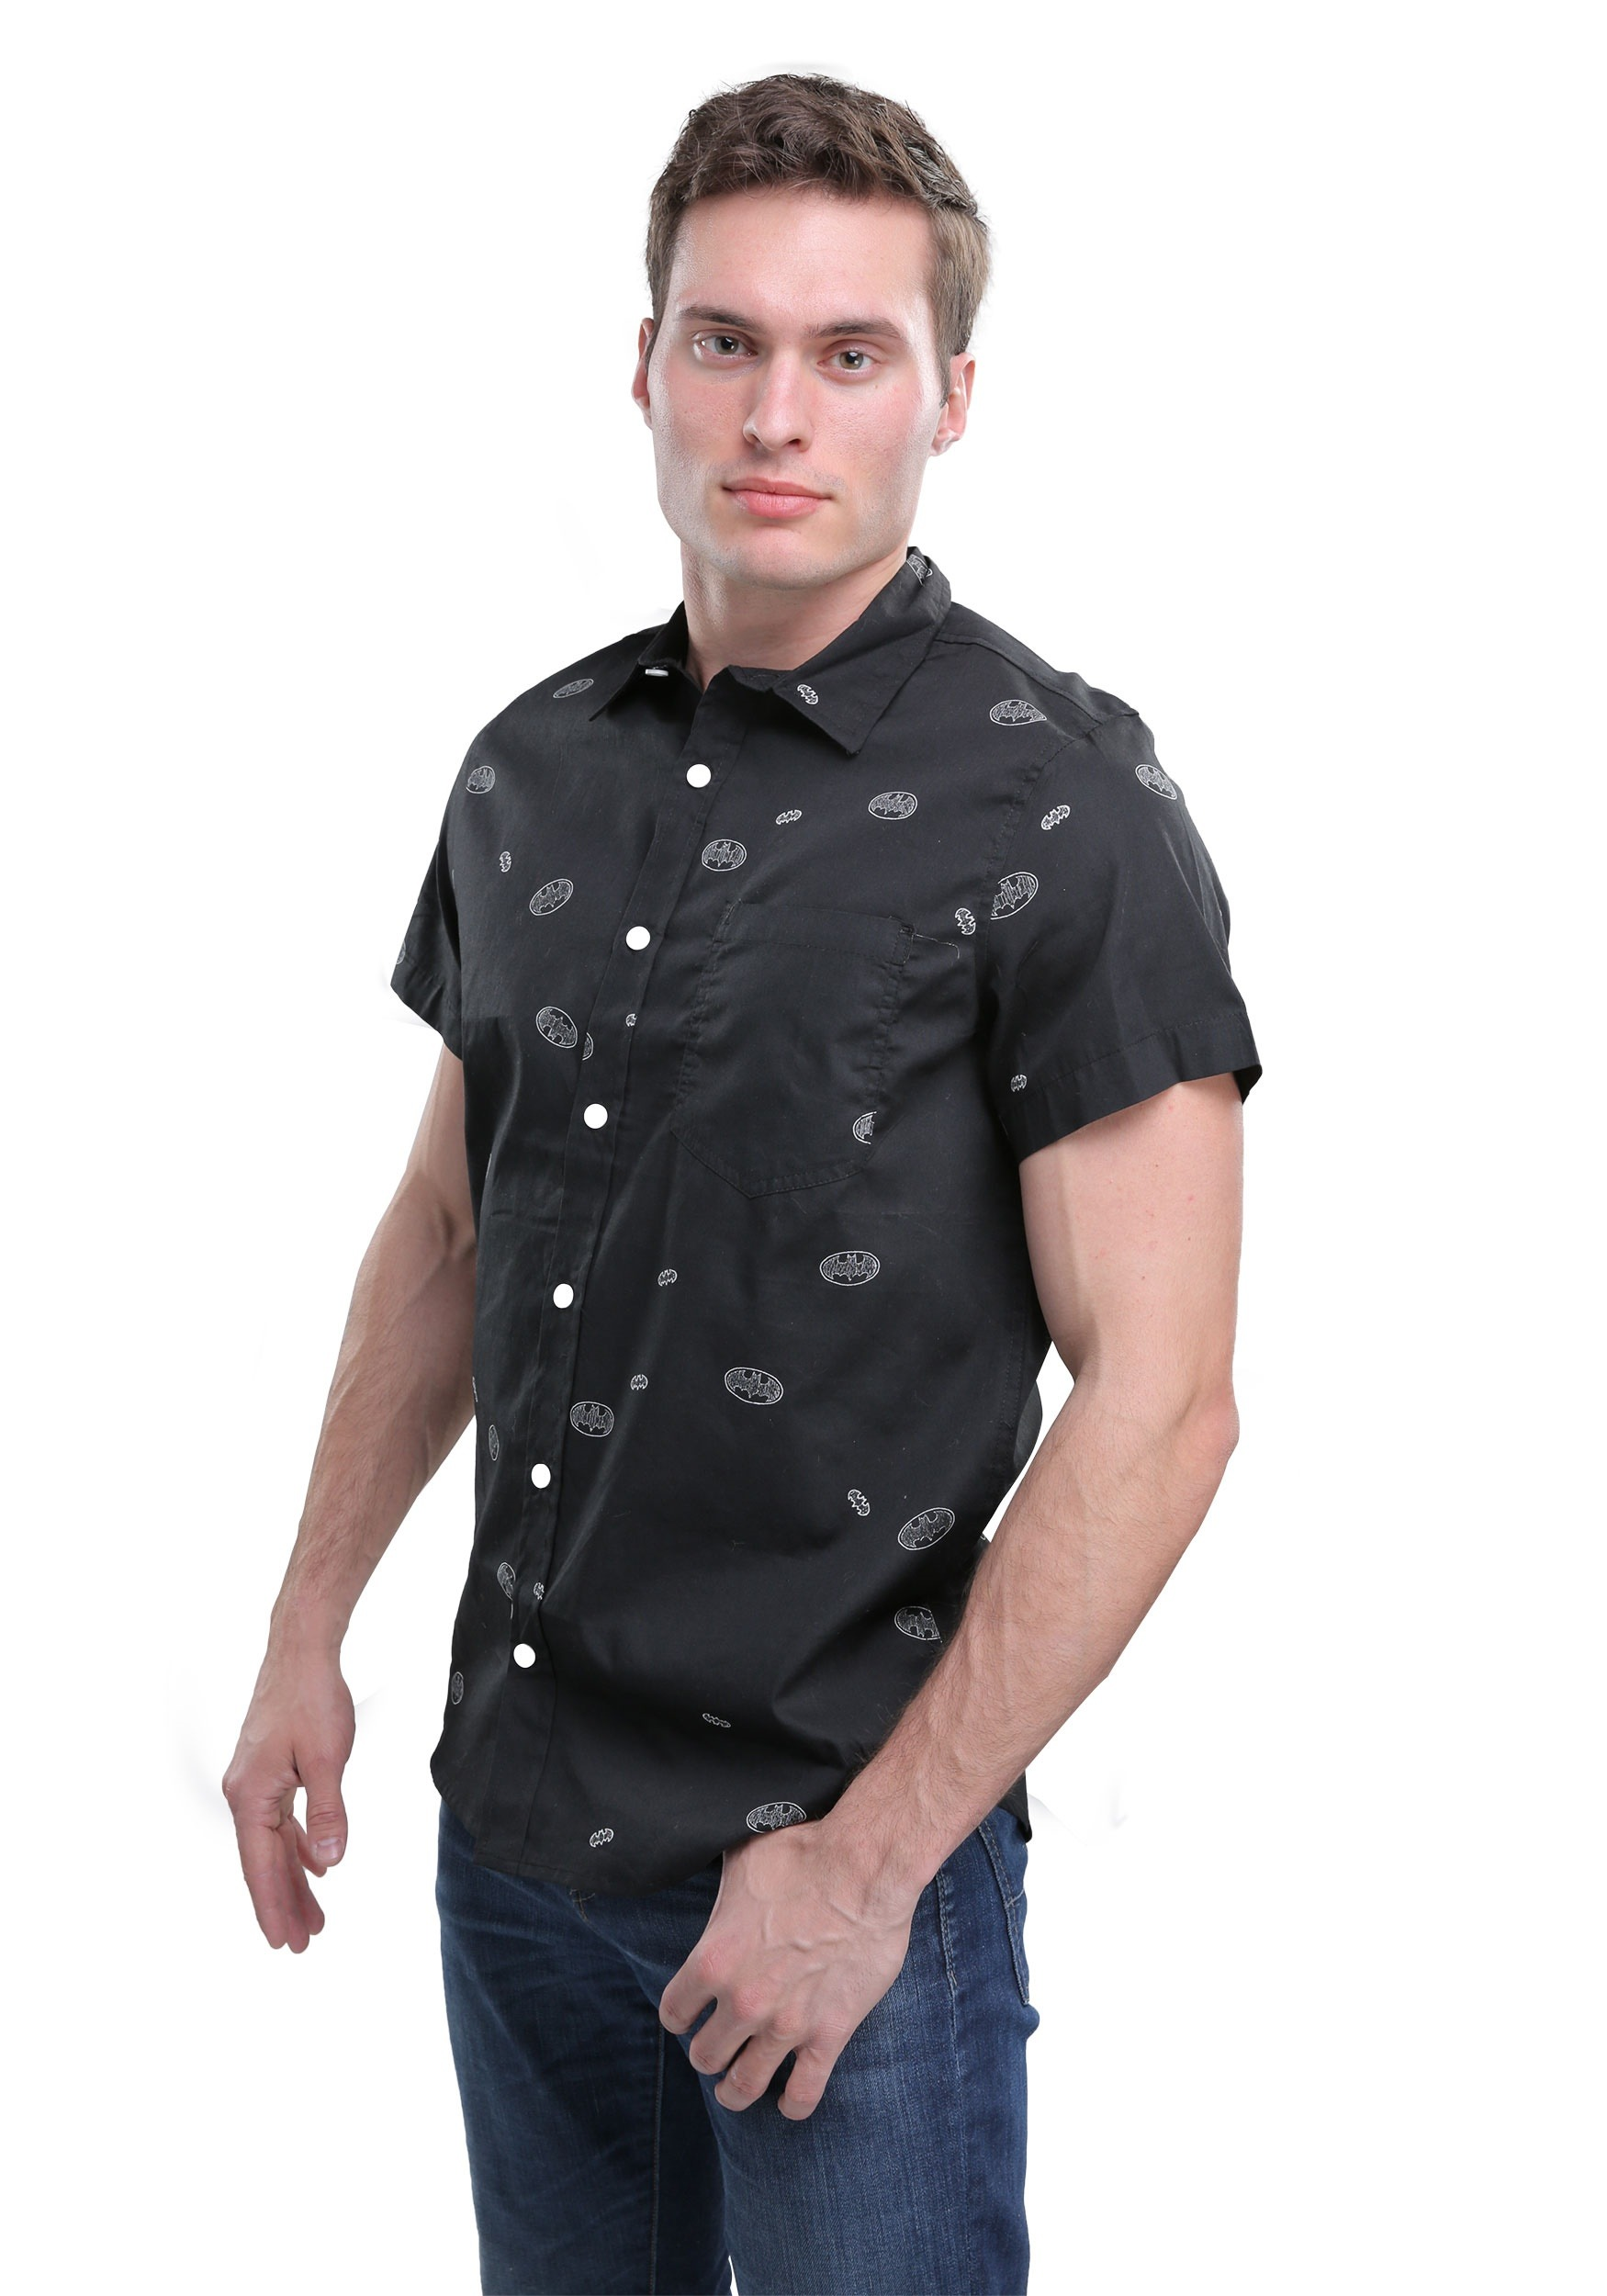 523724198893 DC Comics Batman Woven Button Down Shirt for Men